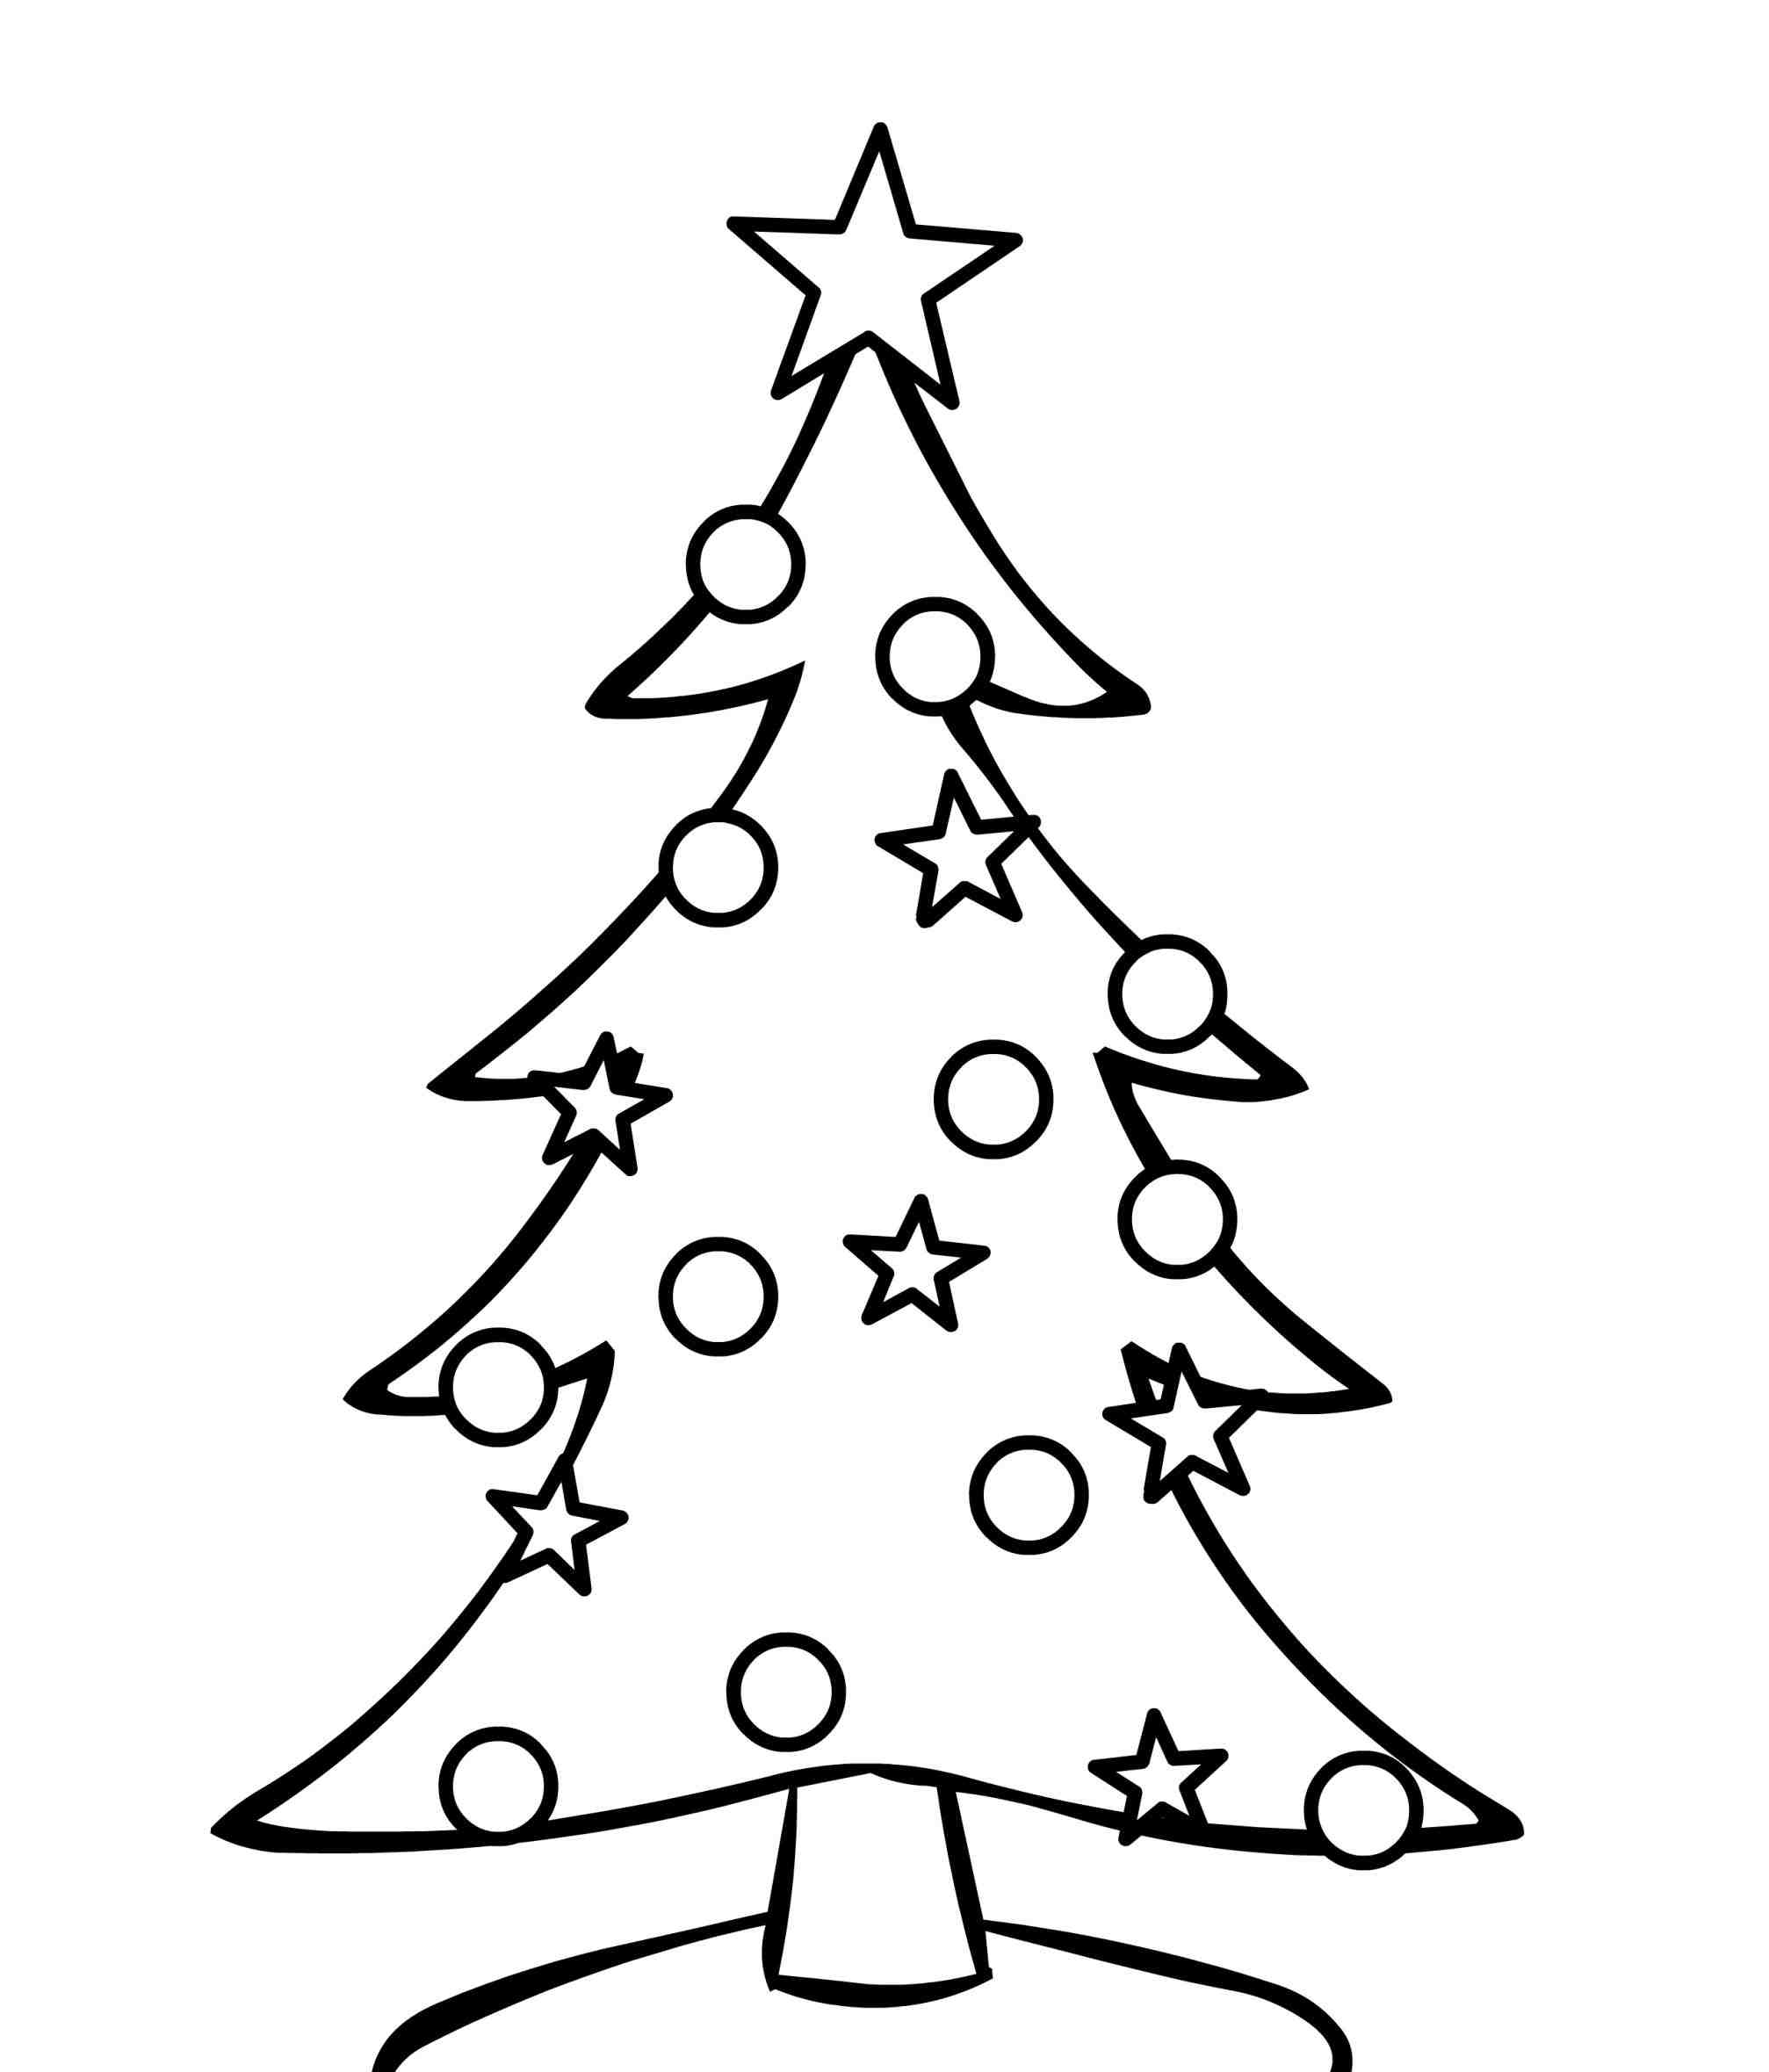 2014x2359 Days Merry Christmas Tree Coloring Page Of Free Printables Clip